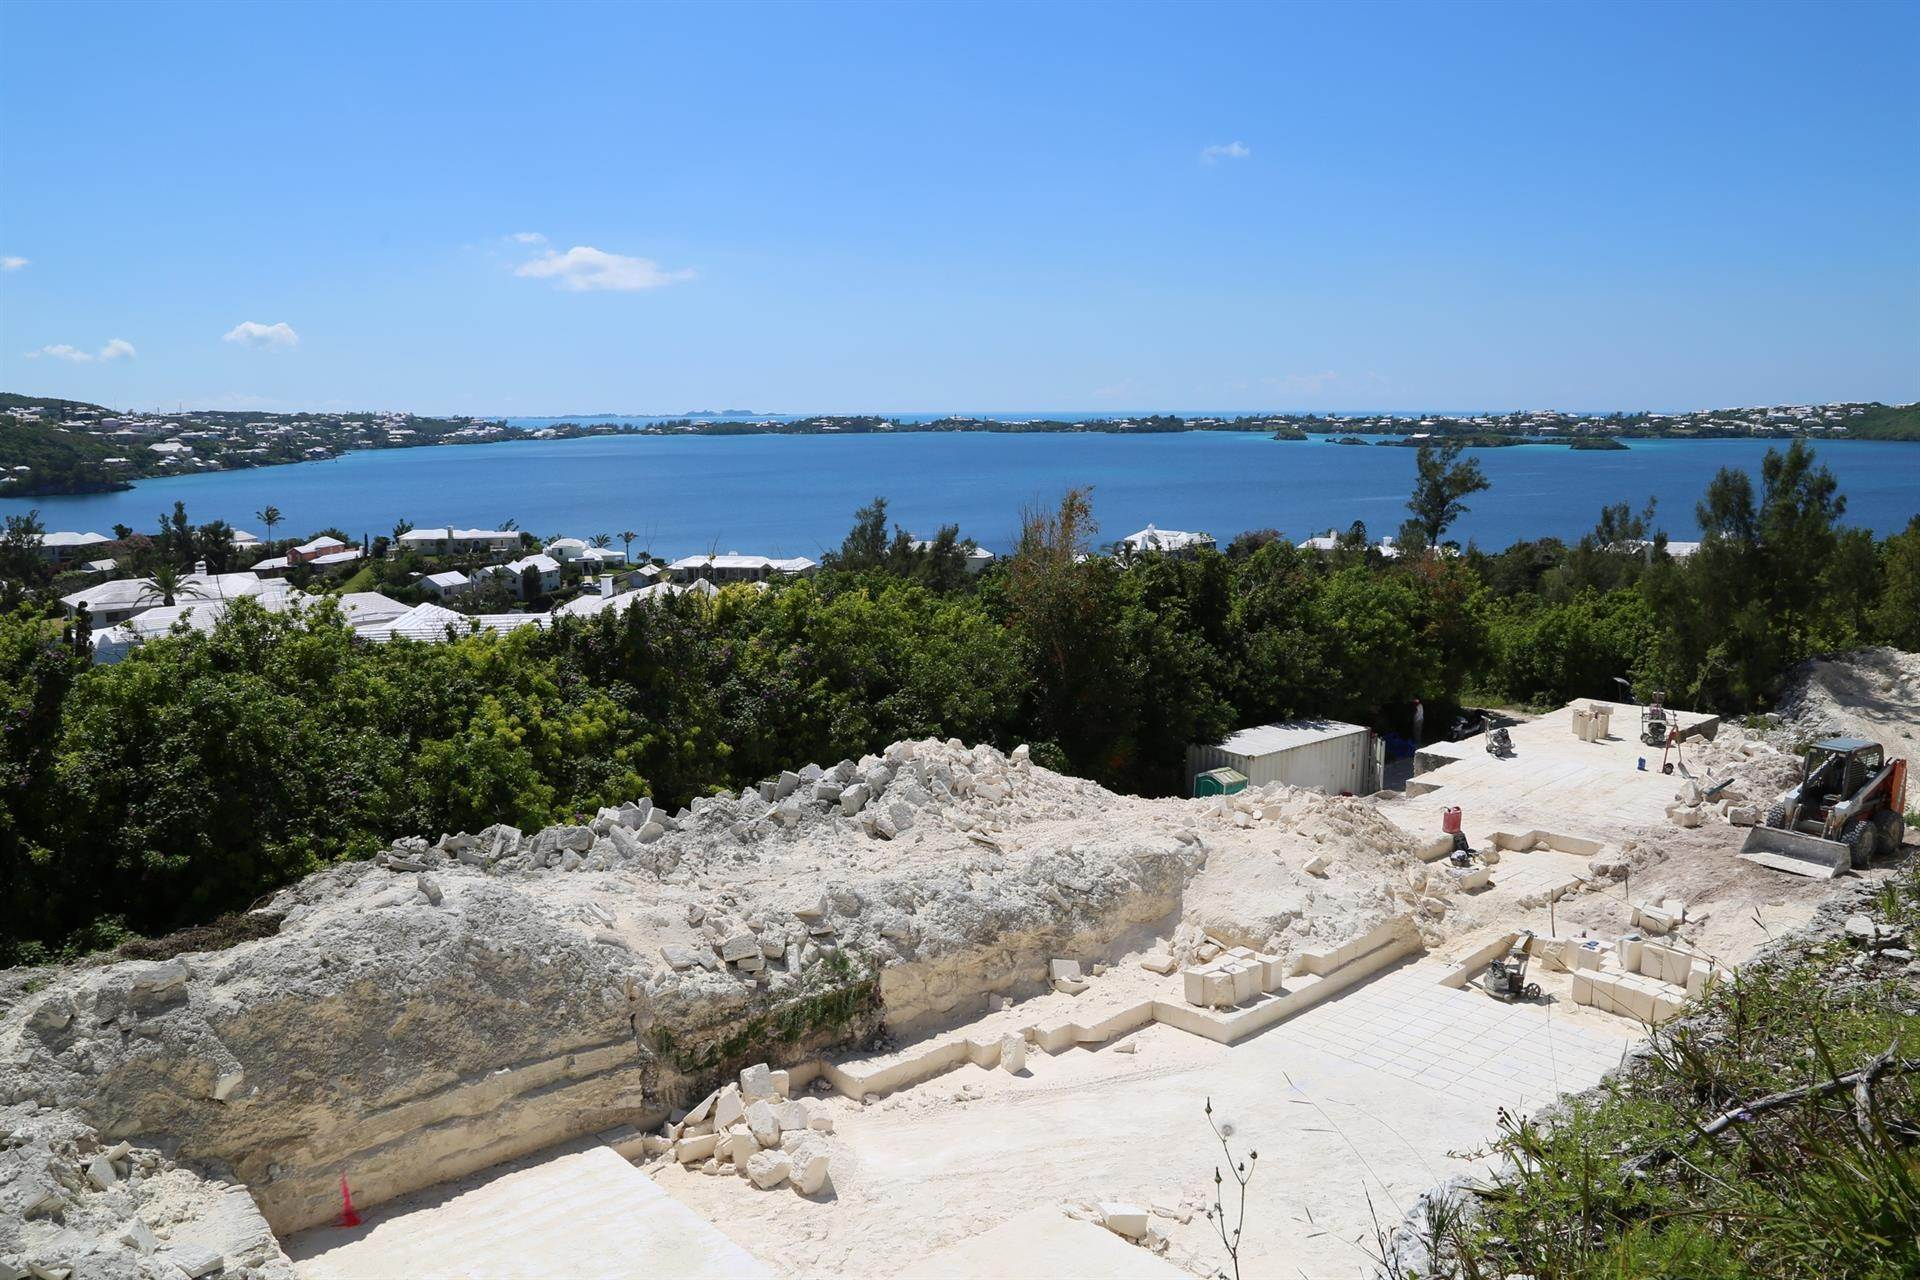 4. Gods för Försäljning vid North Estate: Old Quarry & North Farm North Estate: Old Quarry & North Farm, 126 Harrington Sound Road,Bermuda – Sinclair Realty